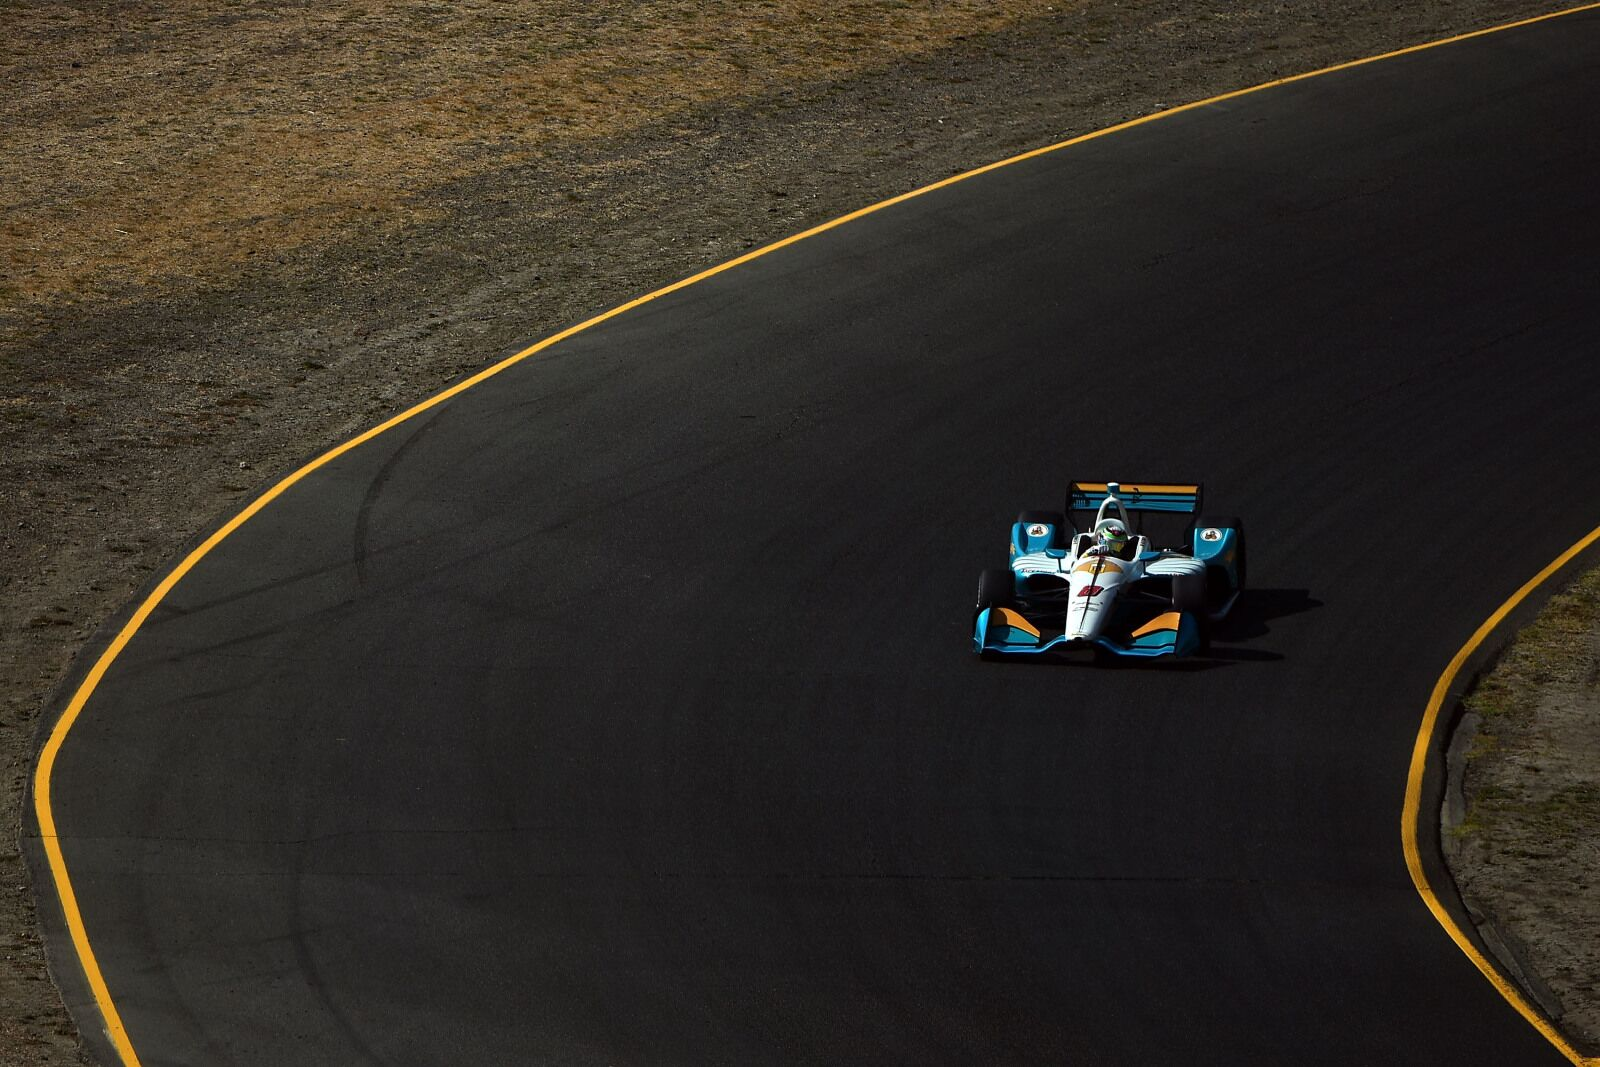 IndyCar: Patricio O'Ward turned down 8-race deal from Andretti Autosport